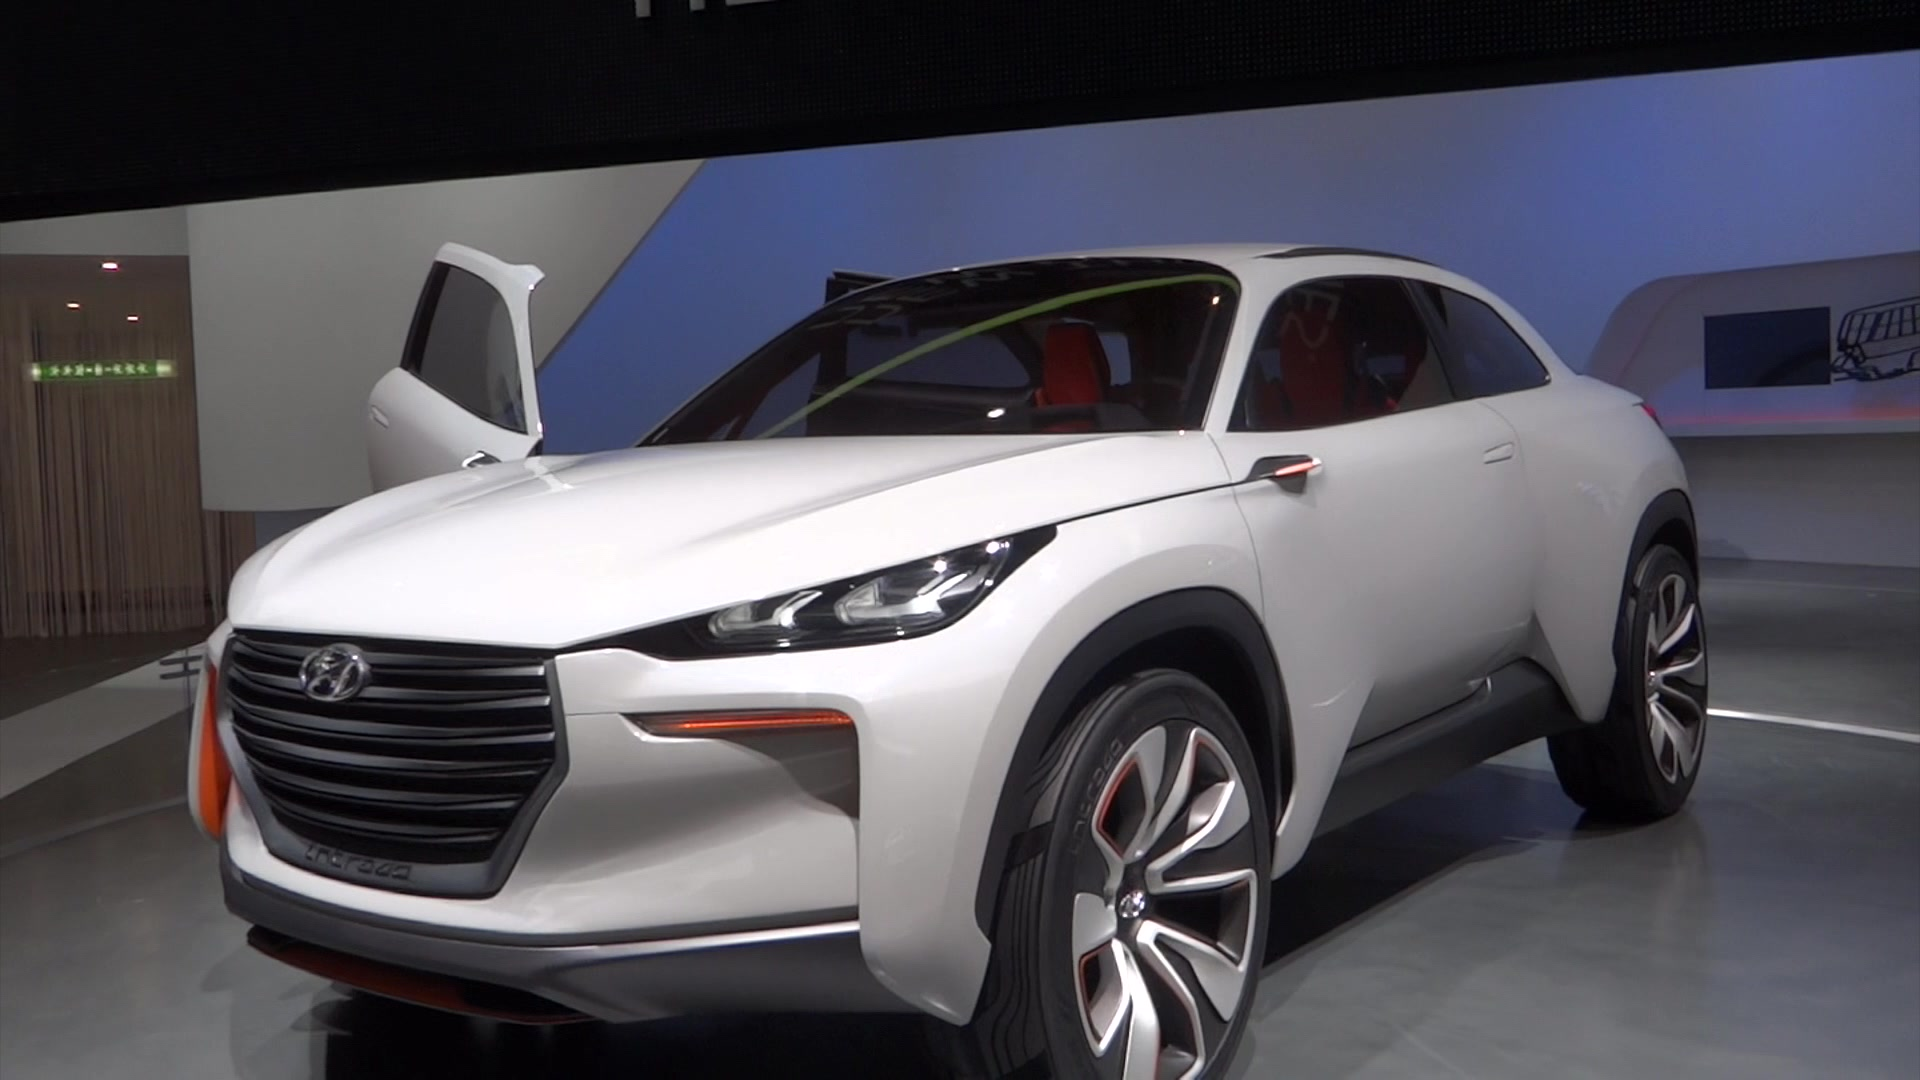 Hyundai Intrado Concept at the 2014 Geneva Motor Show